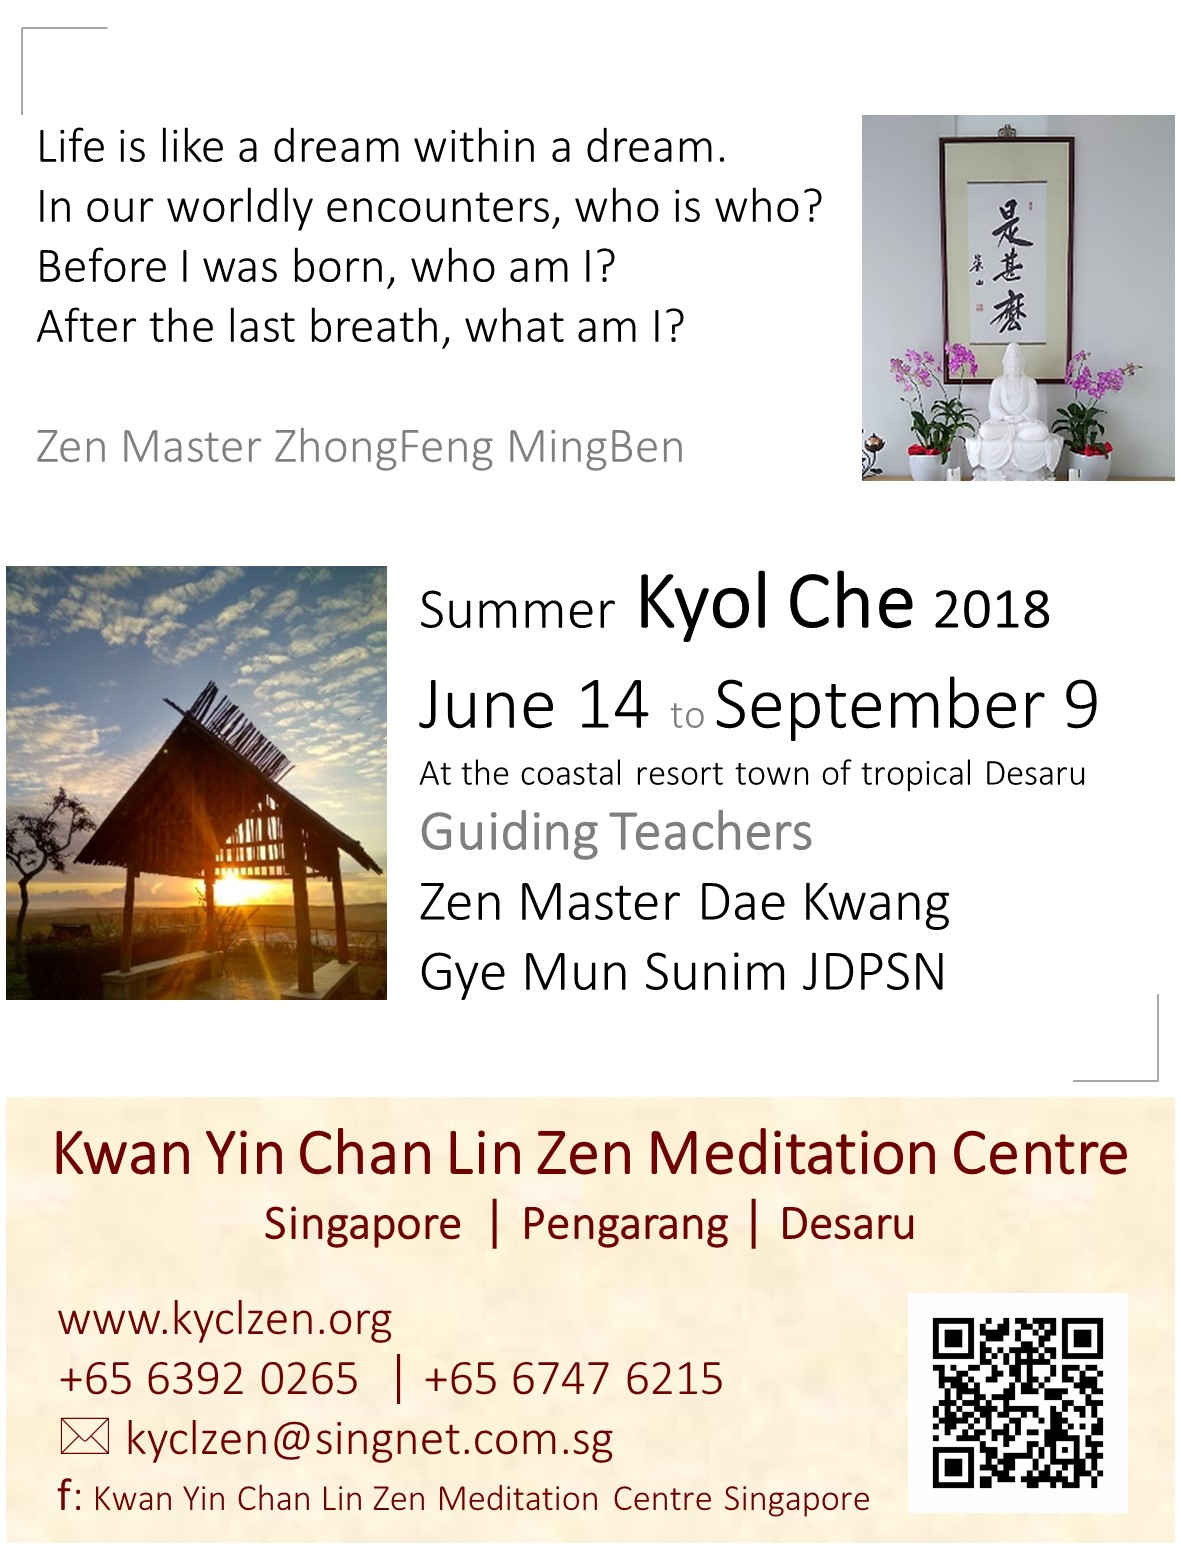 2018 summer kyol chye advertisement_vapr3.jpg